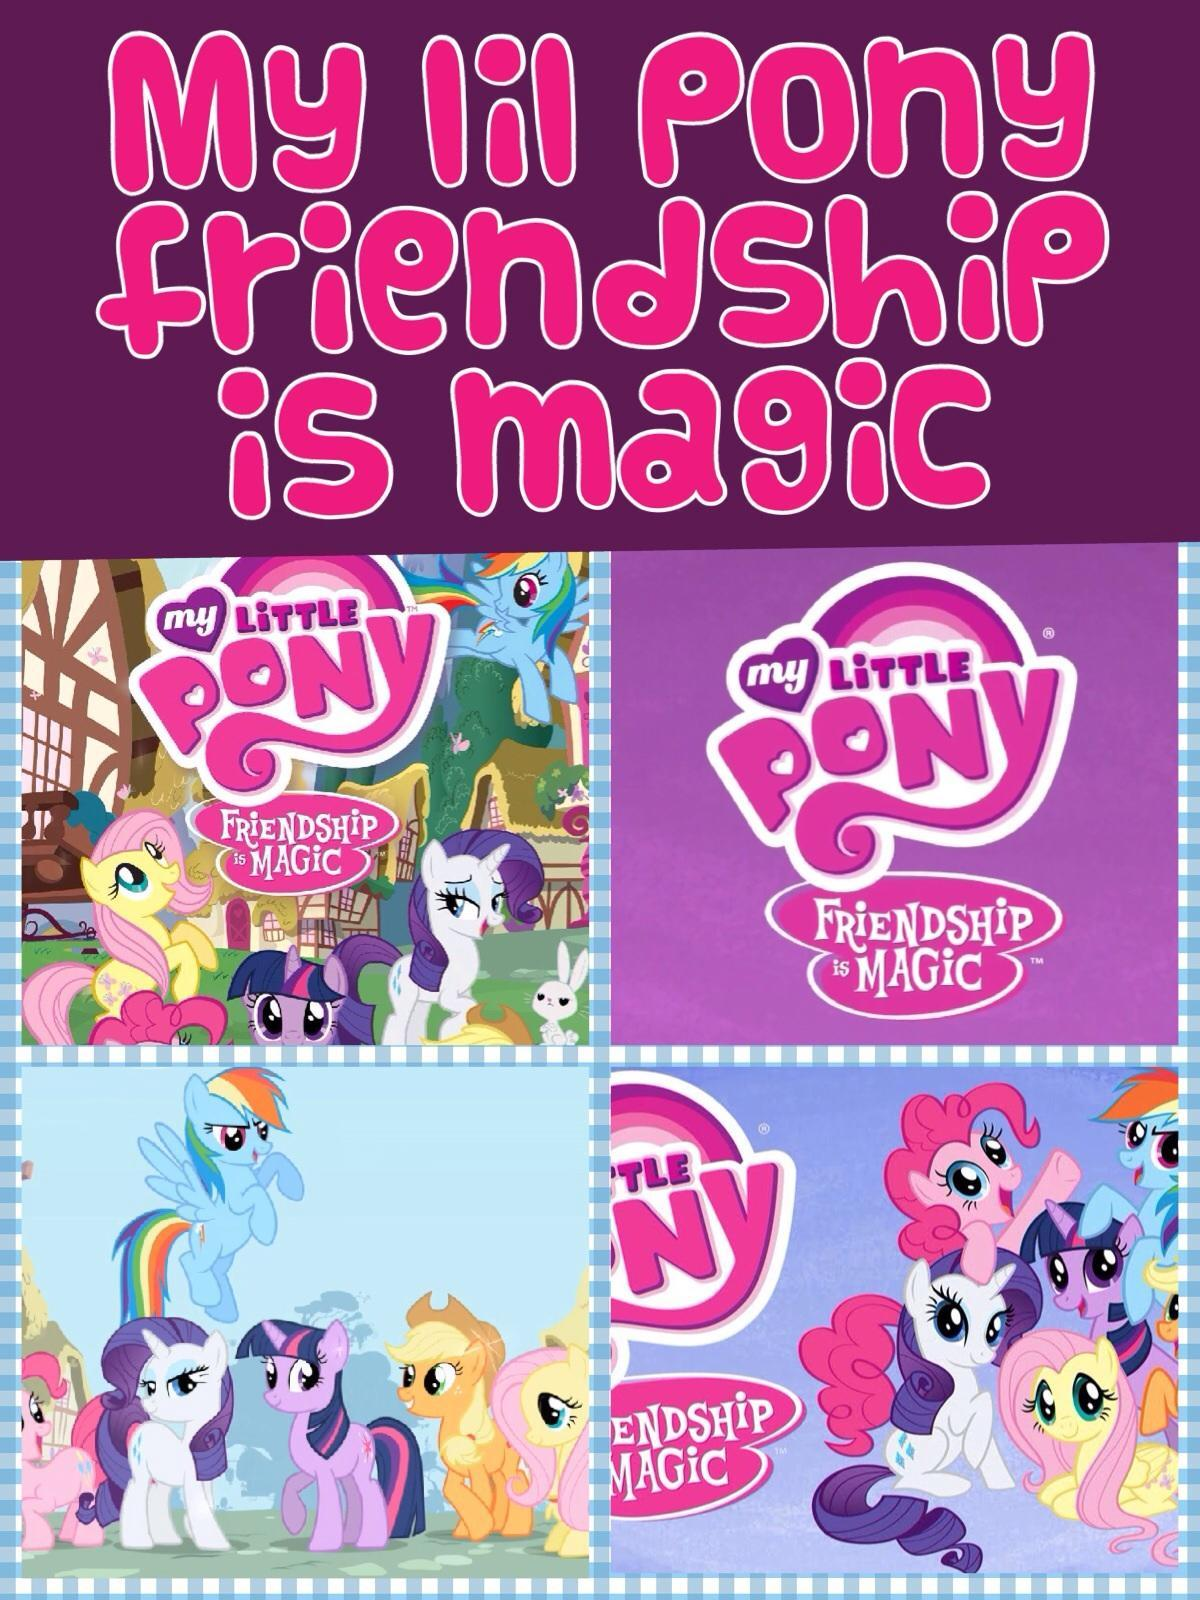 My lil pony friendship is magic